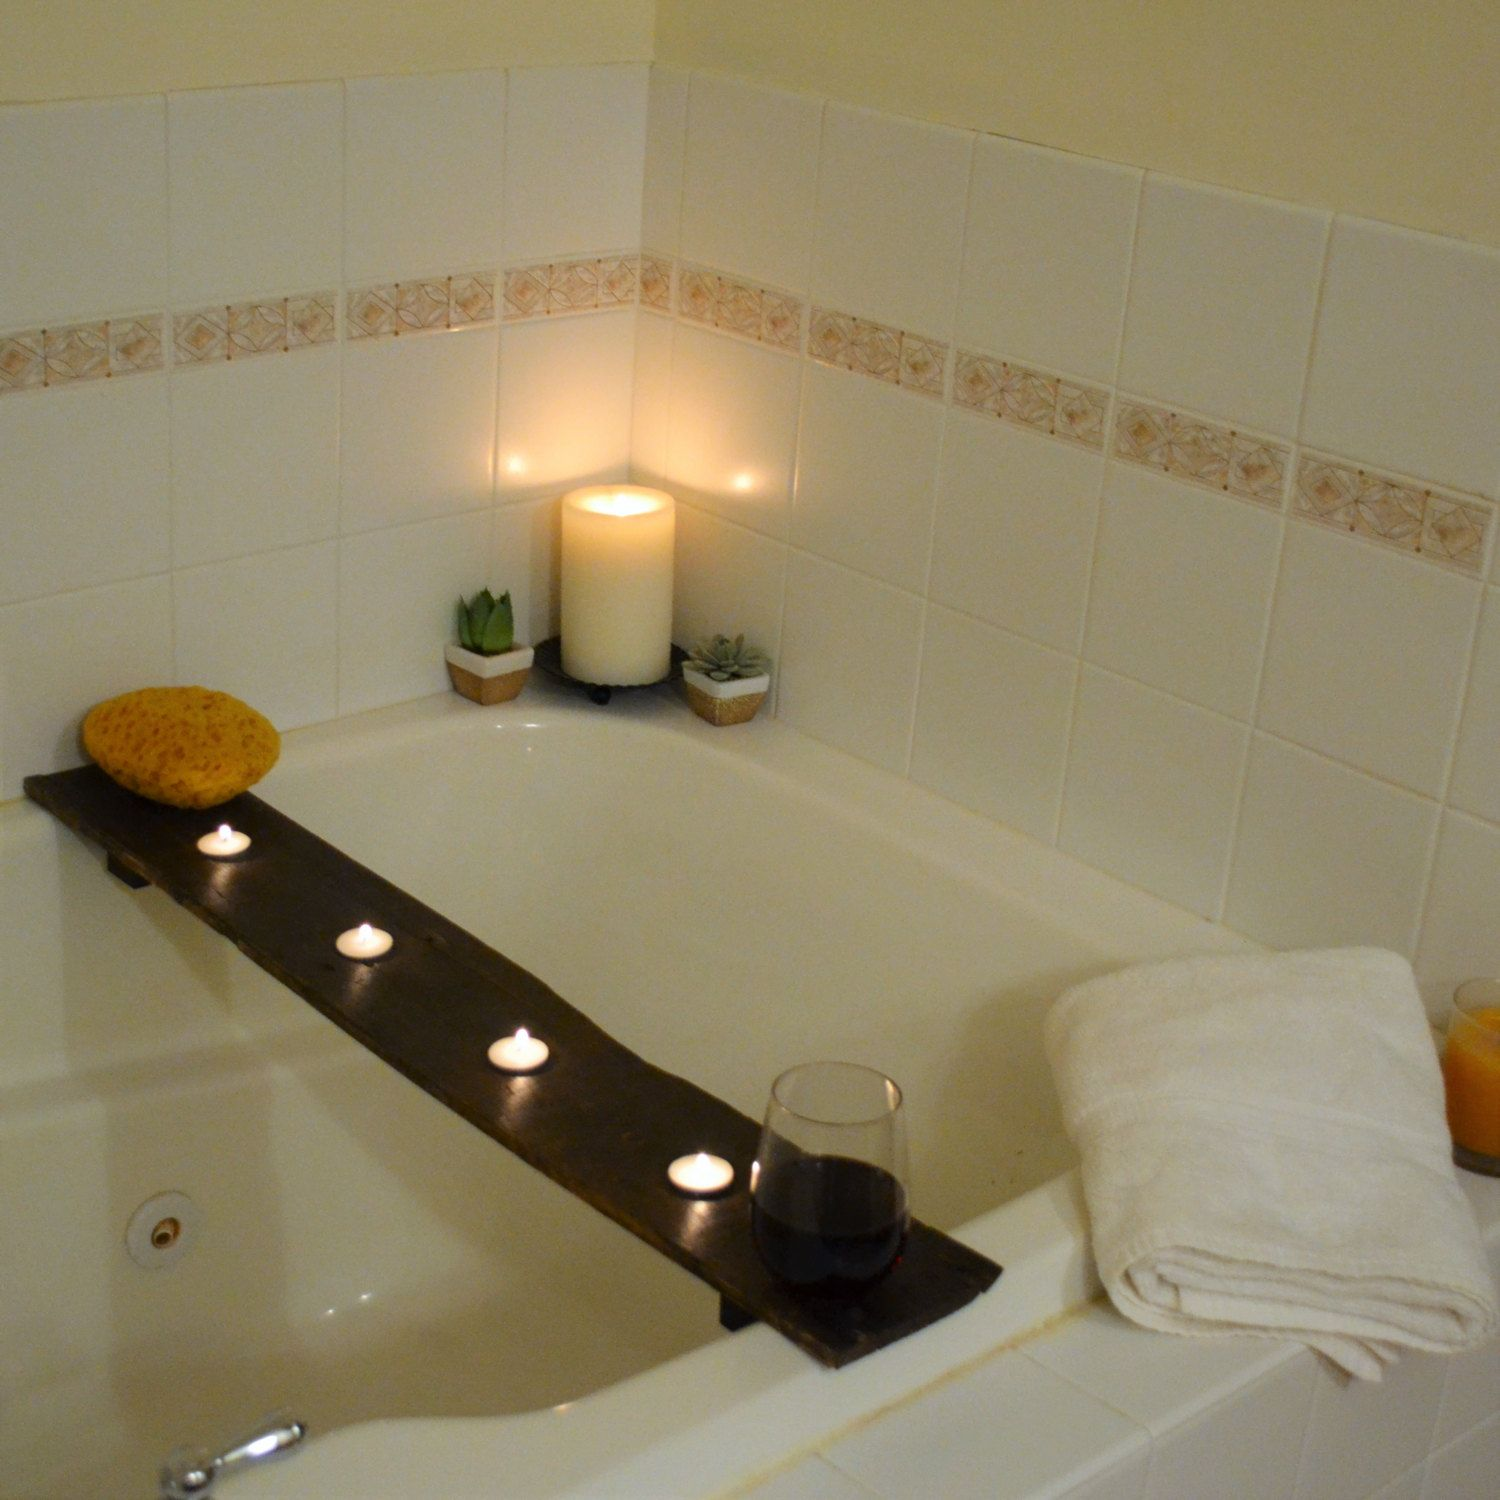 Bathtub Tray with Tealight Candle Holders - Bathing Board to safely ...